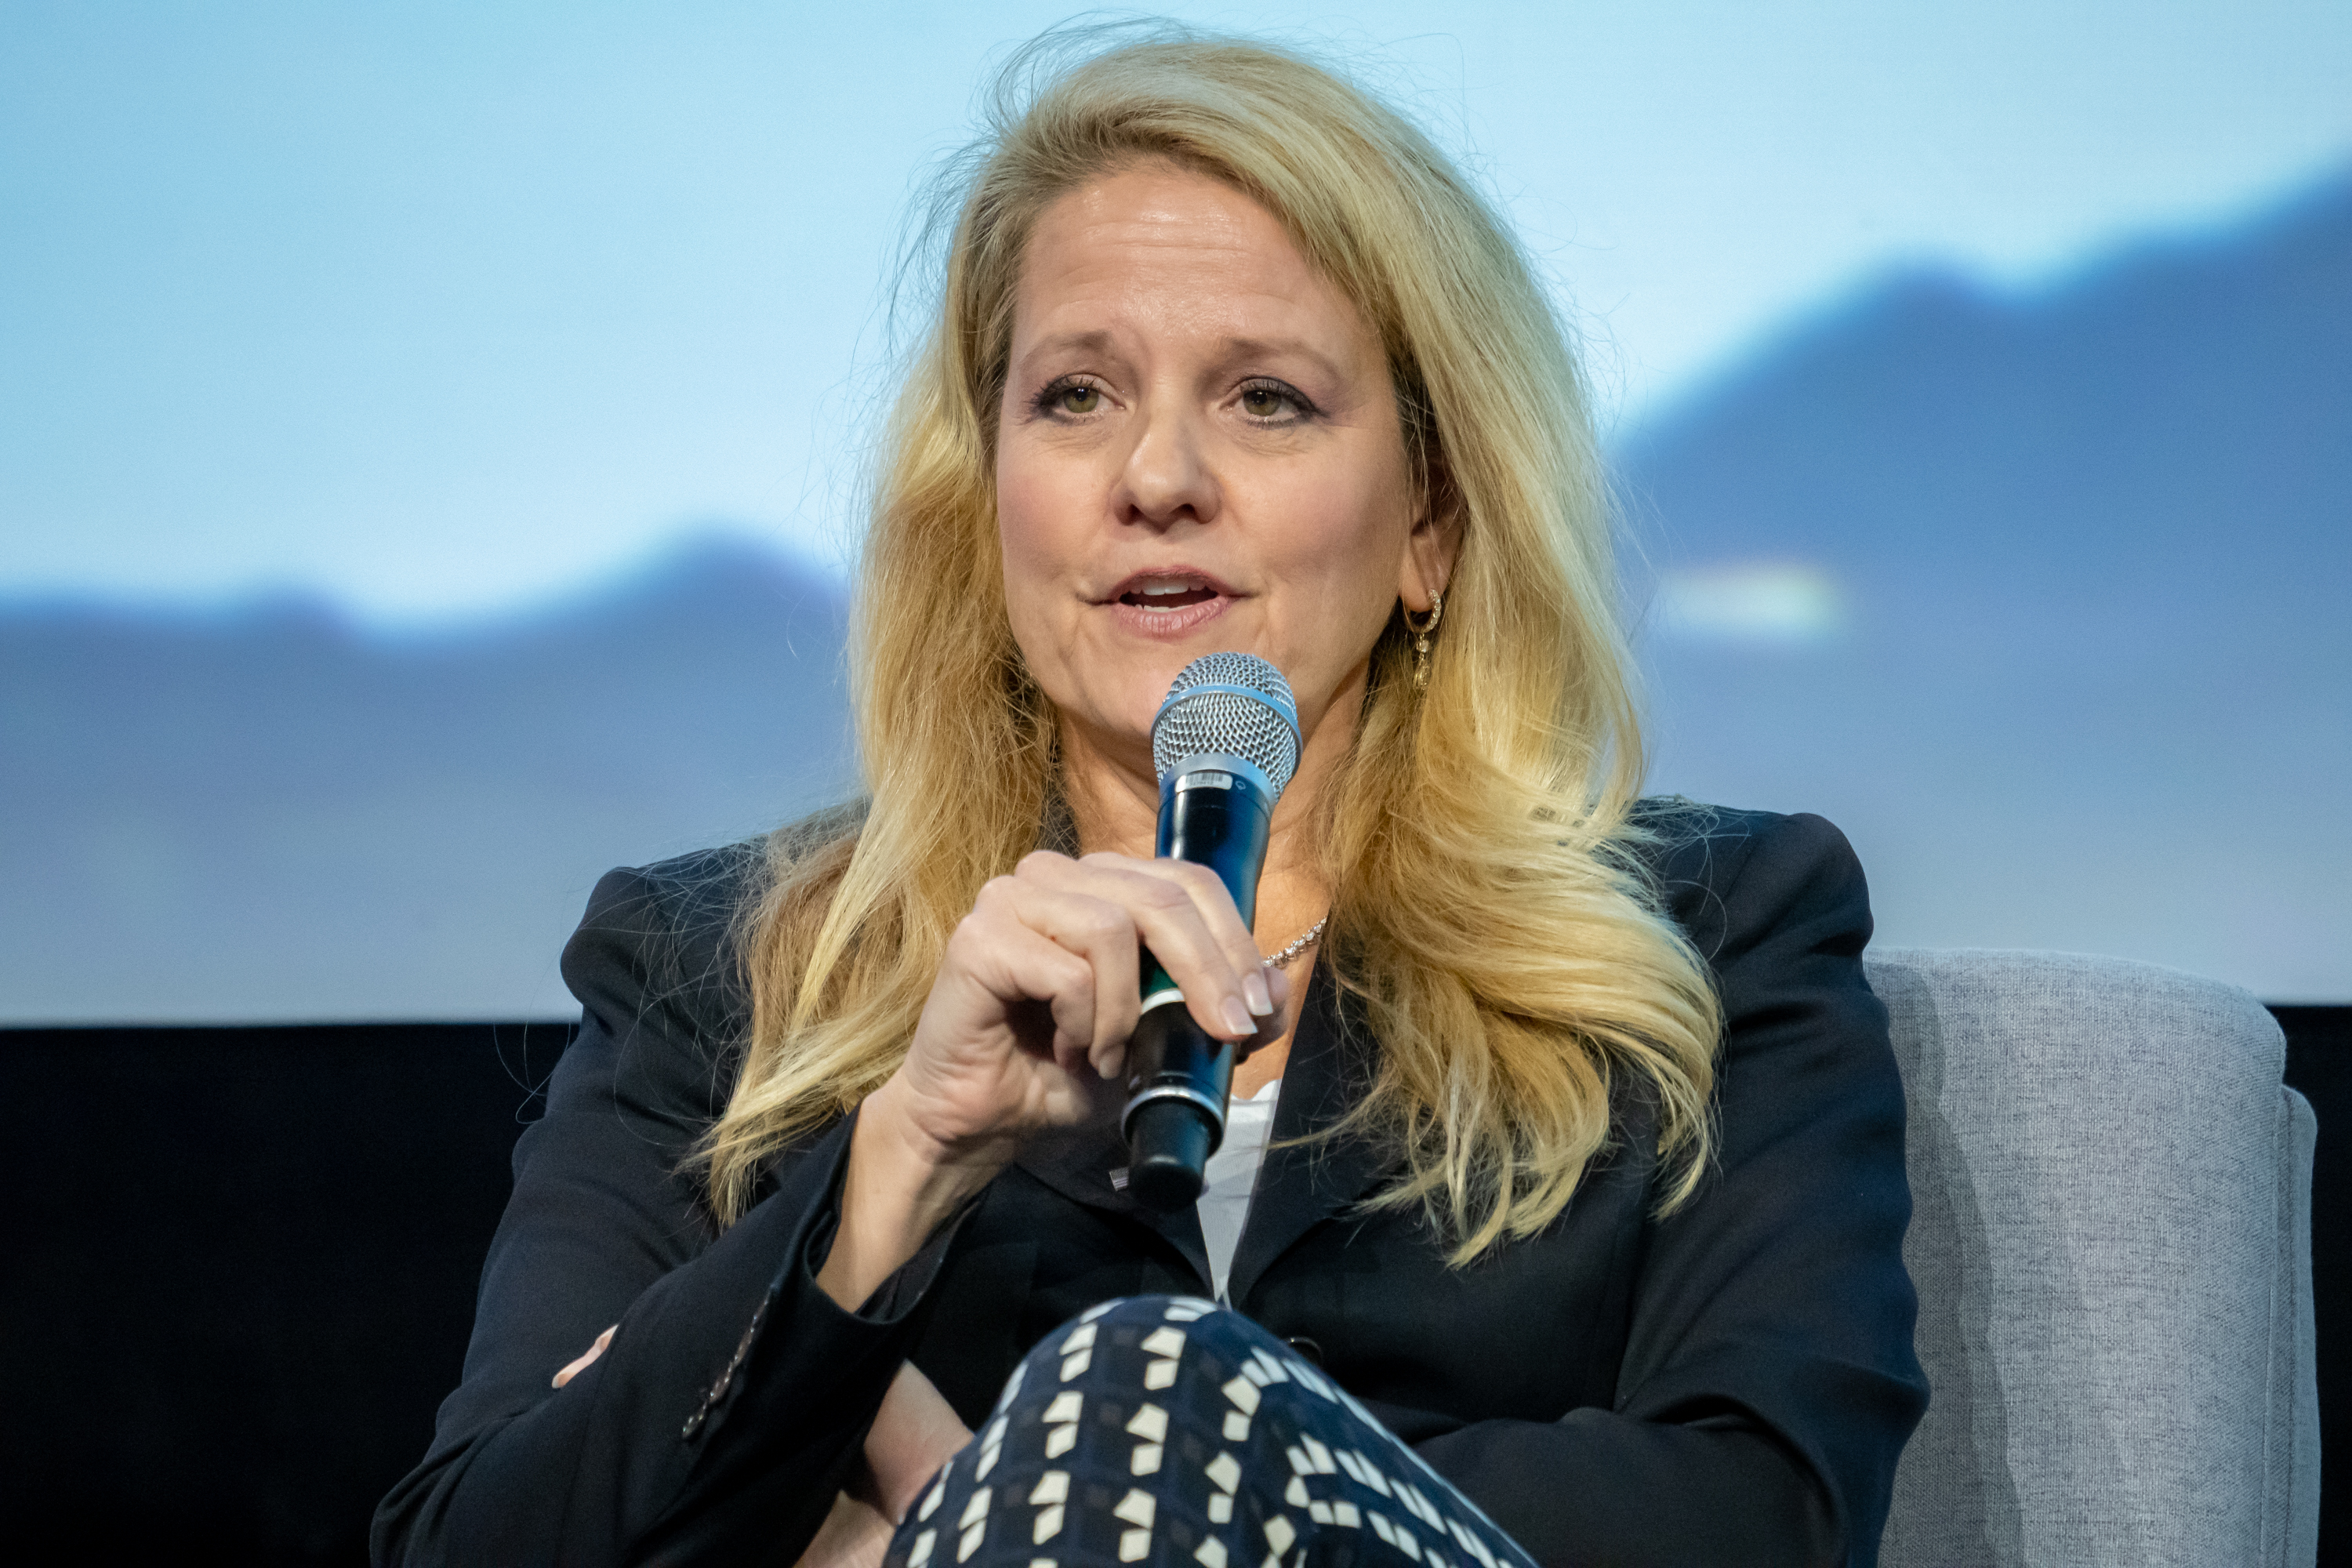 SpaceX President and COO Gwynne Shotwell at IAC 2019